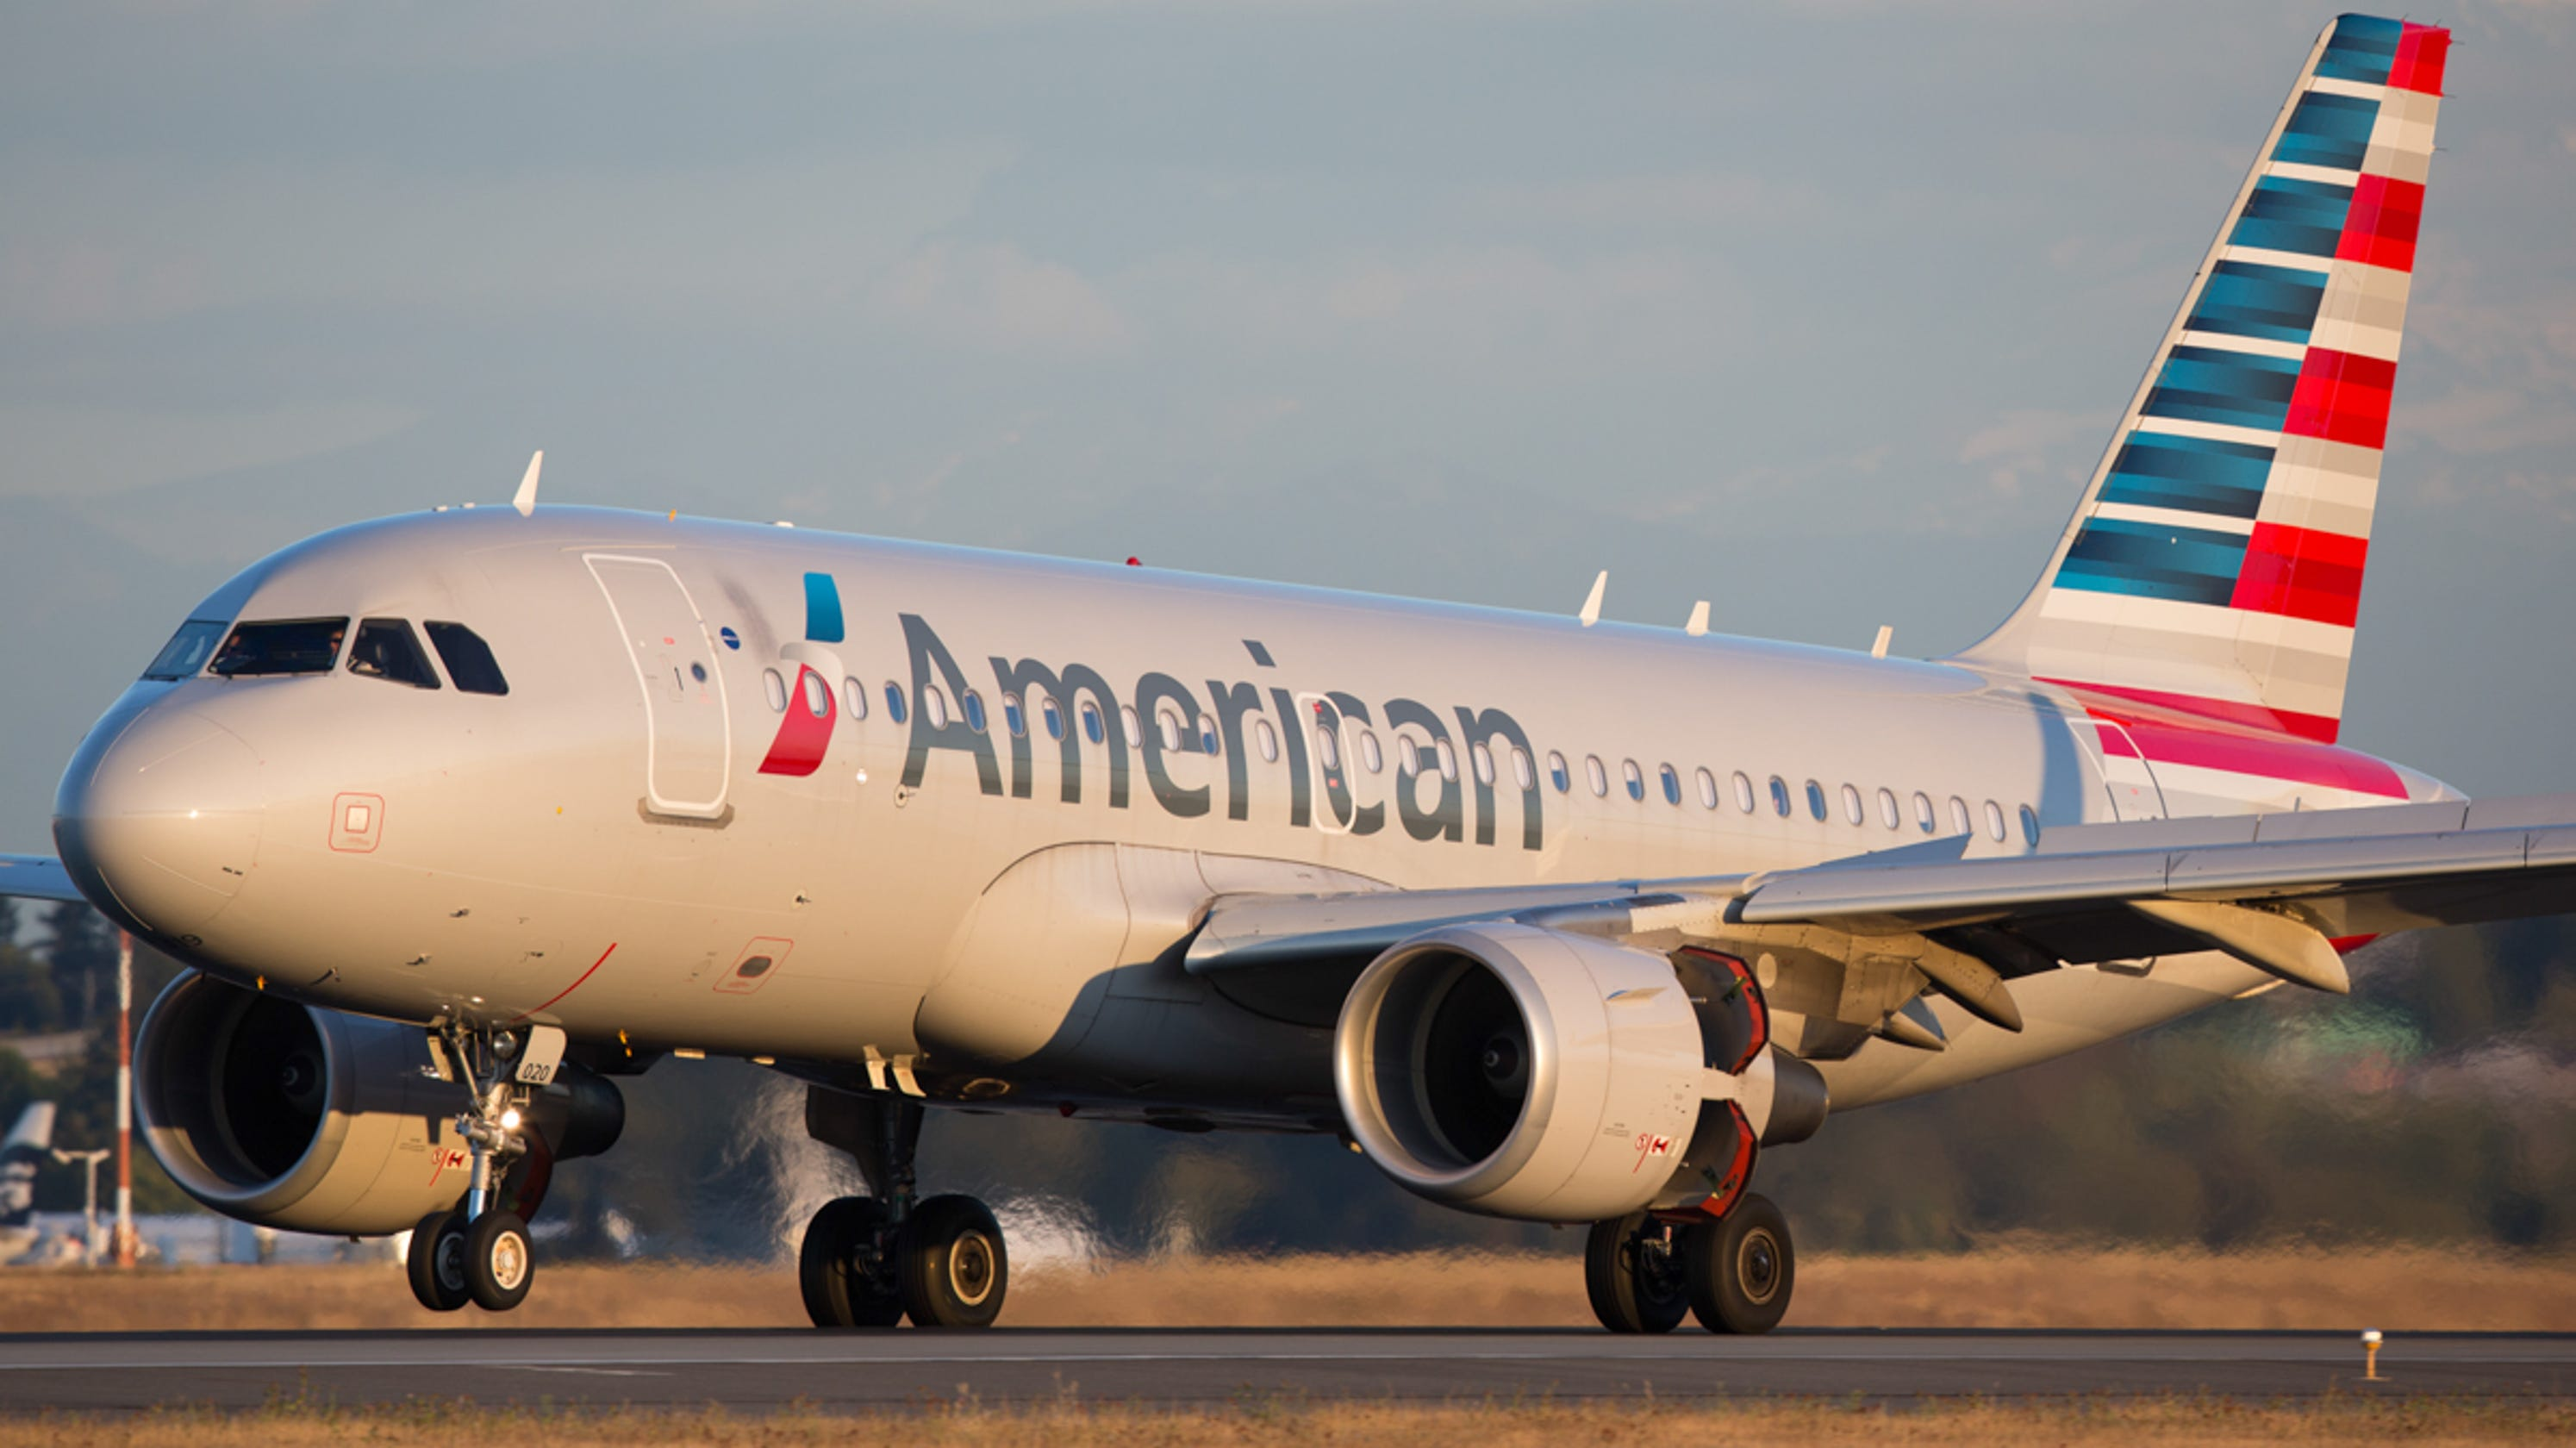 American Airlines To Allow Travelers With Nut Allergies To